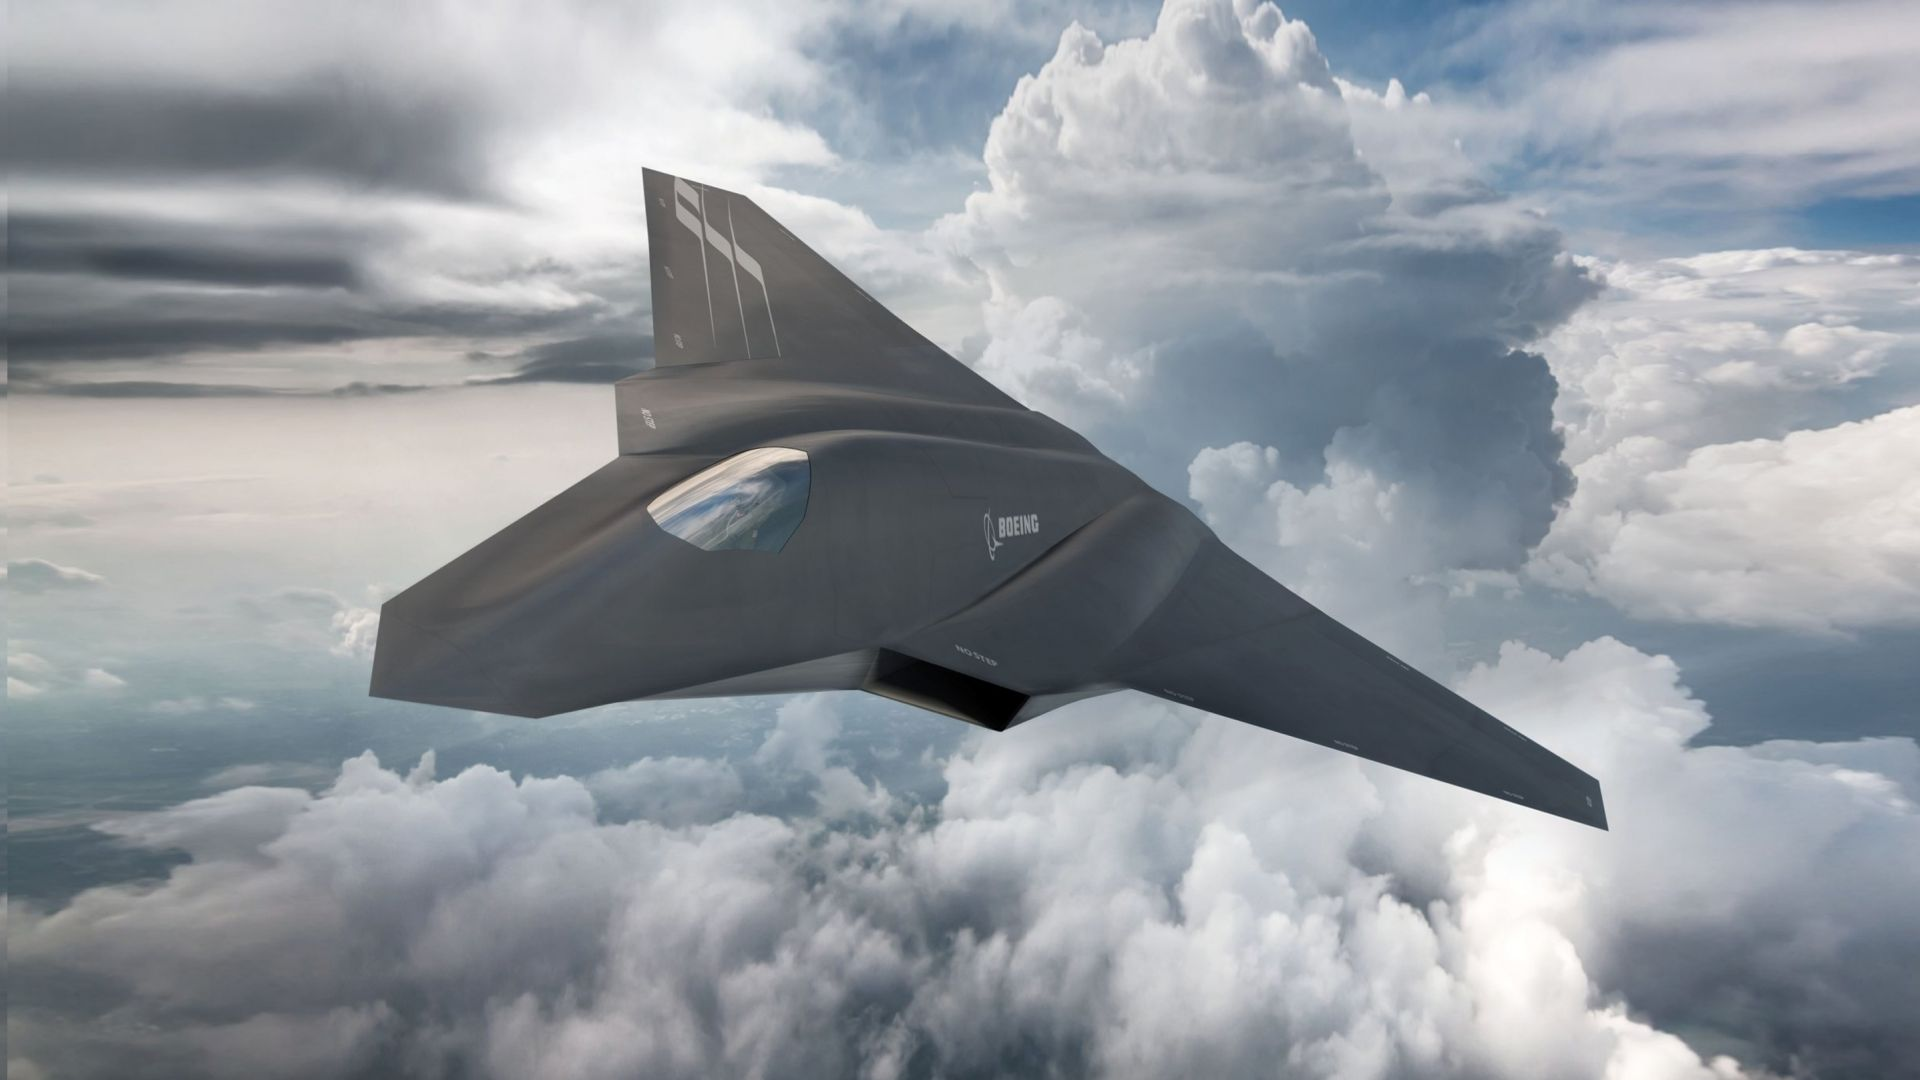 Boeing F X, Боинг, истребитель, армия Сша, ВВС США, Boeing F X, fighter aircraft, clouds, Concept, U.S. Air Force (horizontal)